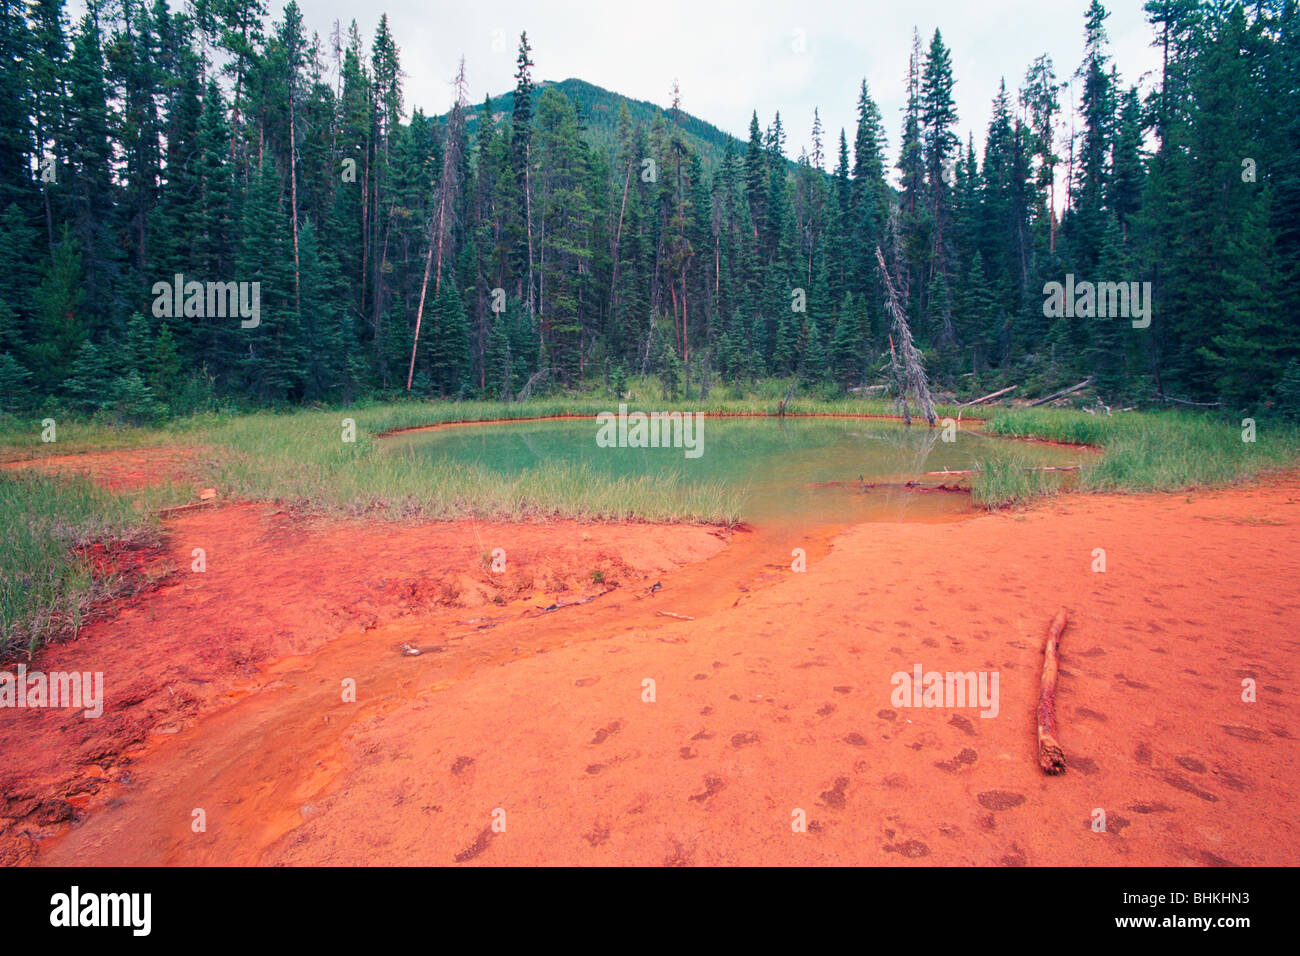 Red Soil at an Ochre Pond, British Columbia, Canada - Stock Image